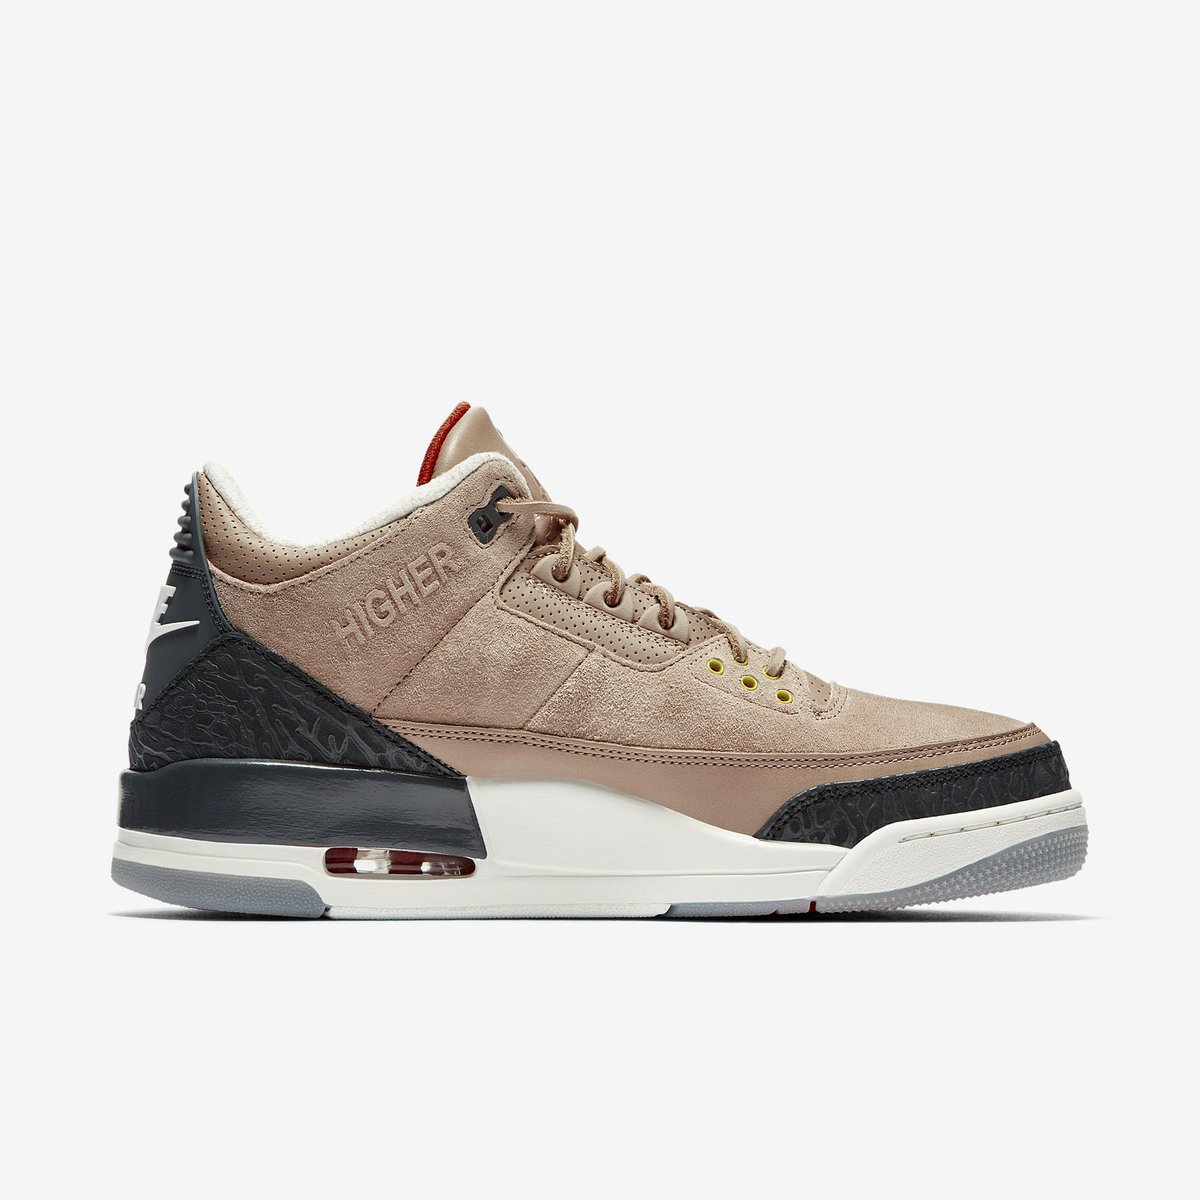 e6db6dca481b37 ... low price swoosh supply on twitter official nike images of the bio  beige air jordan 3